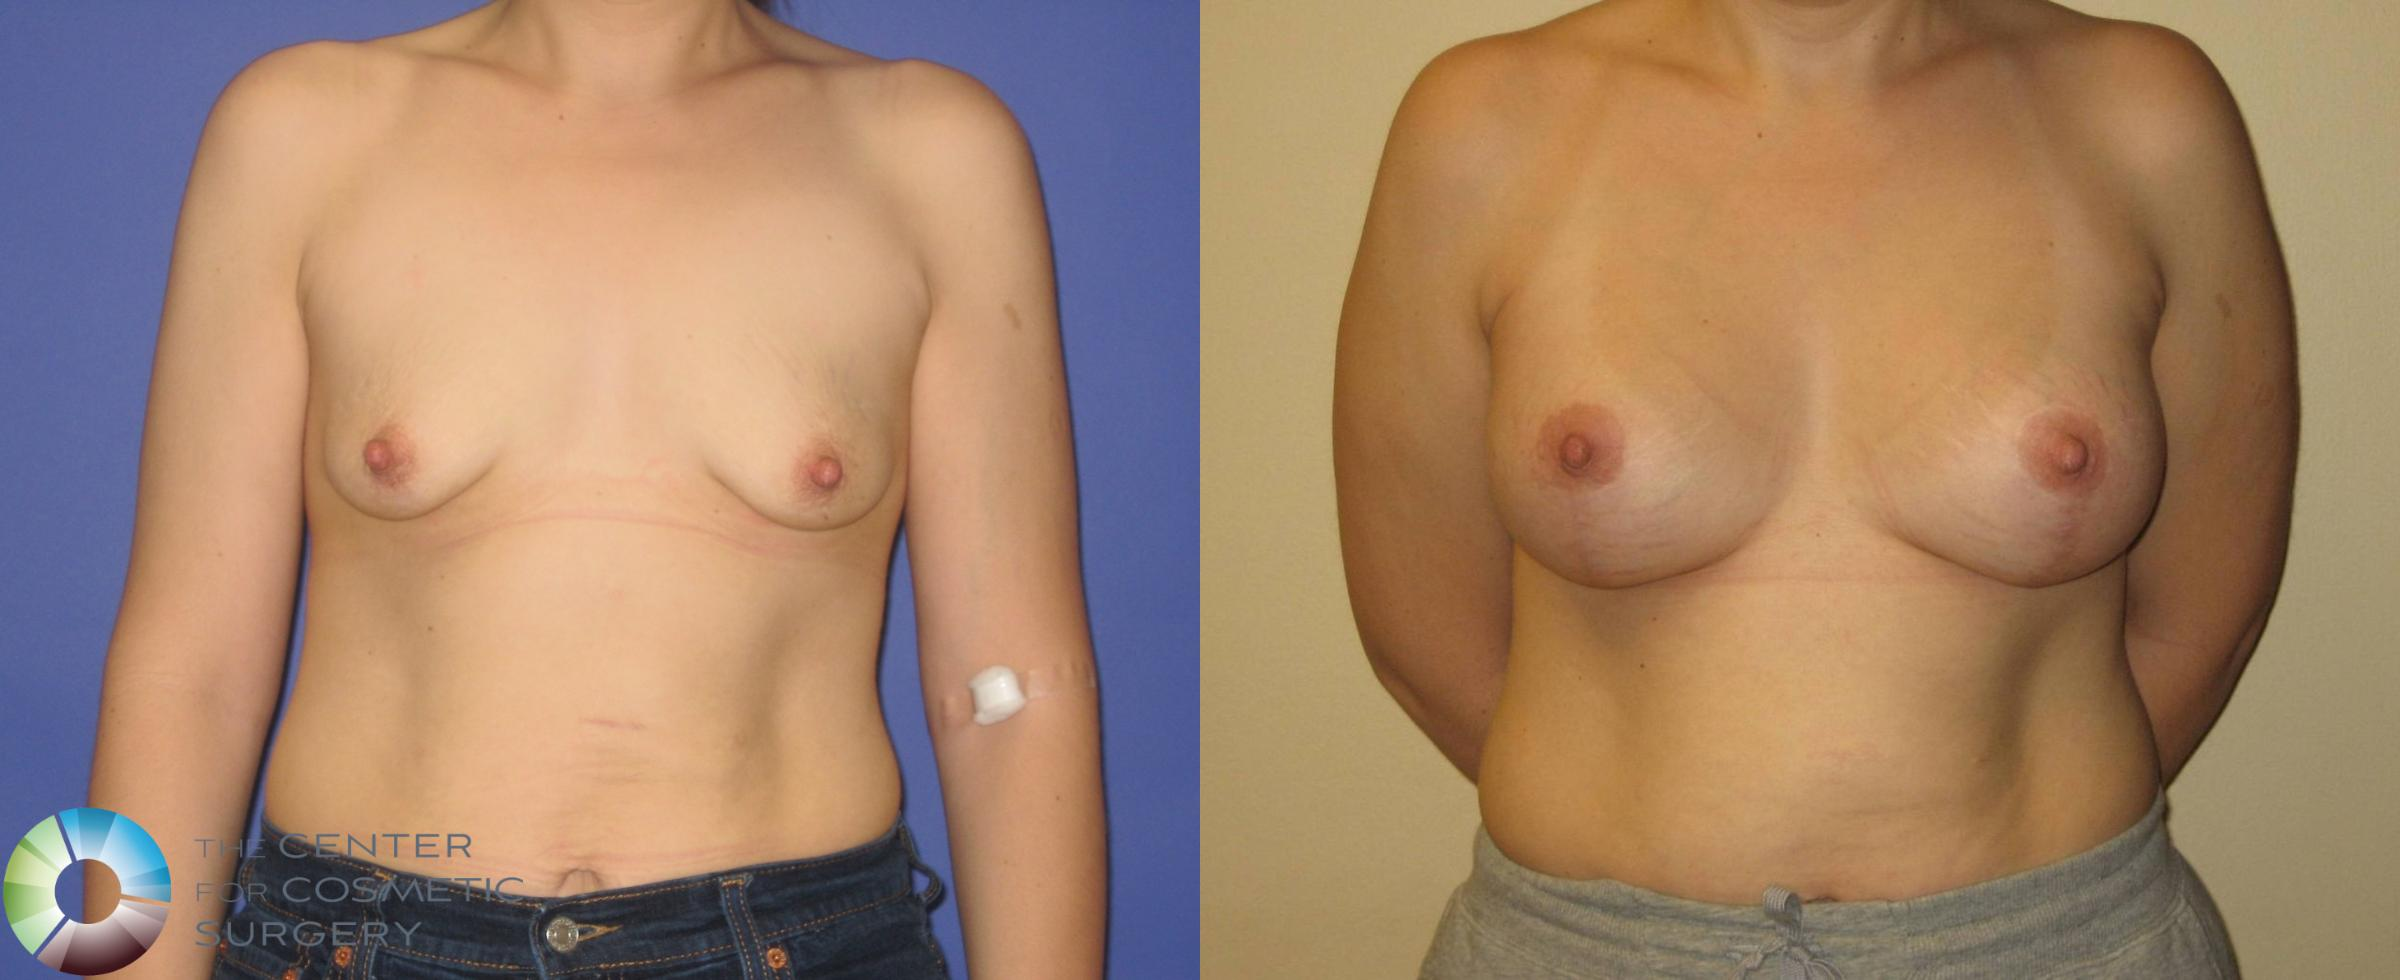 Breast Augmentation Case 355 Before & After View #1 | Golden, CO | The Center for Cosmetic Surgery